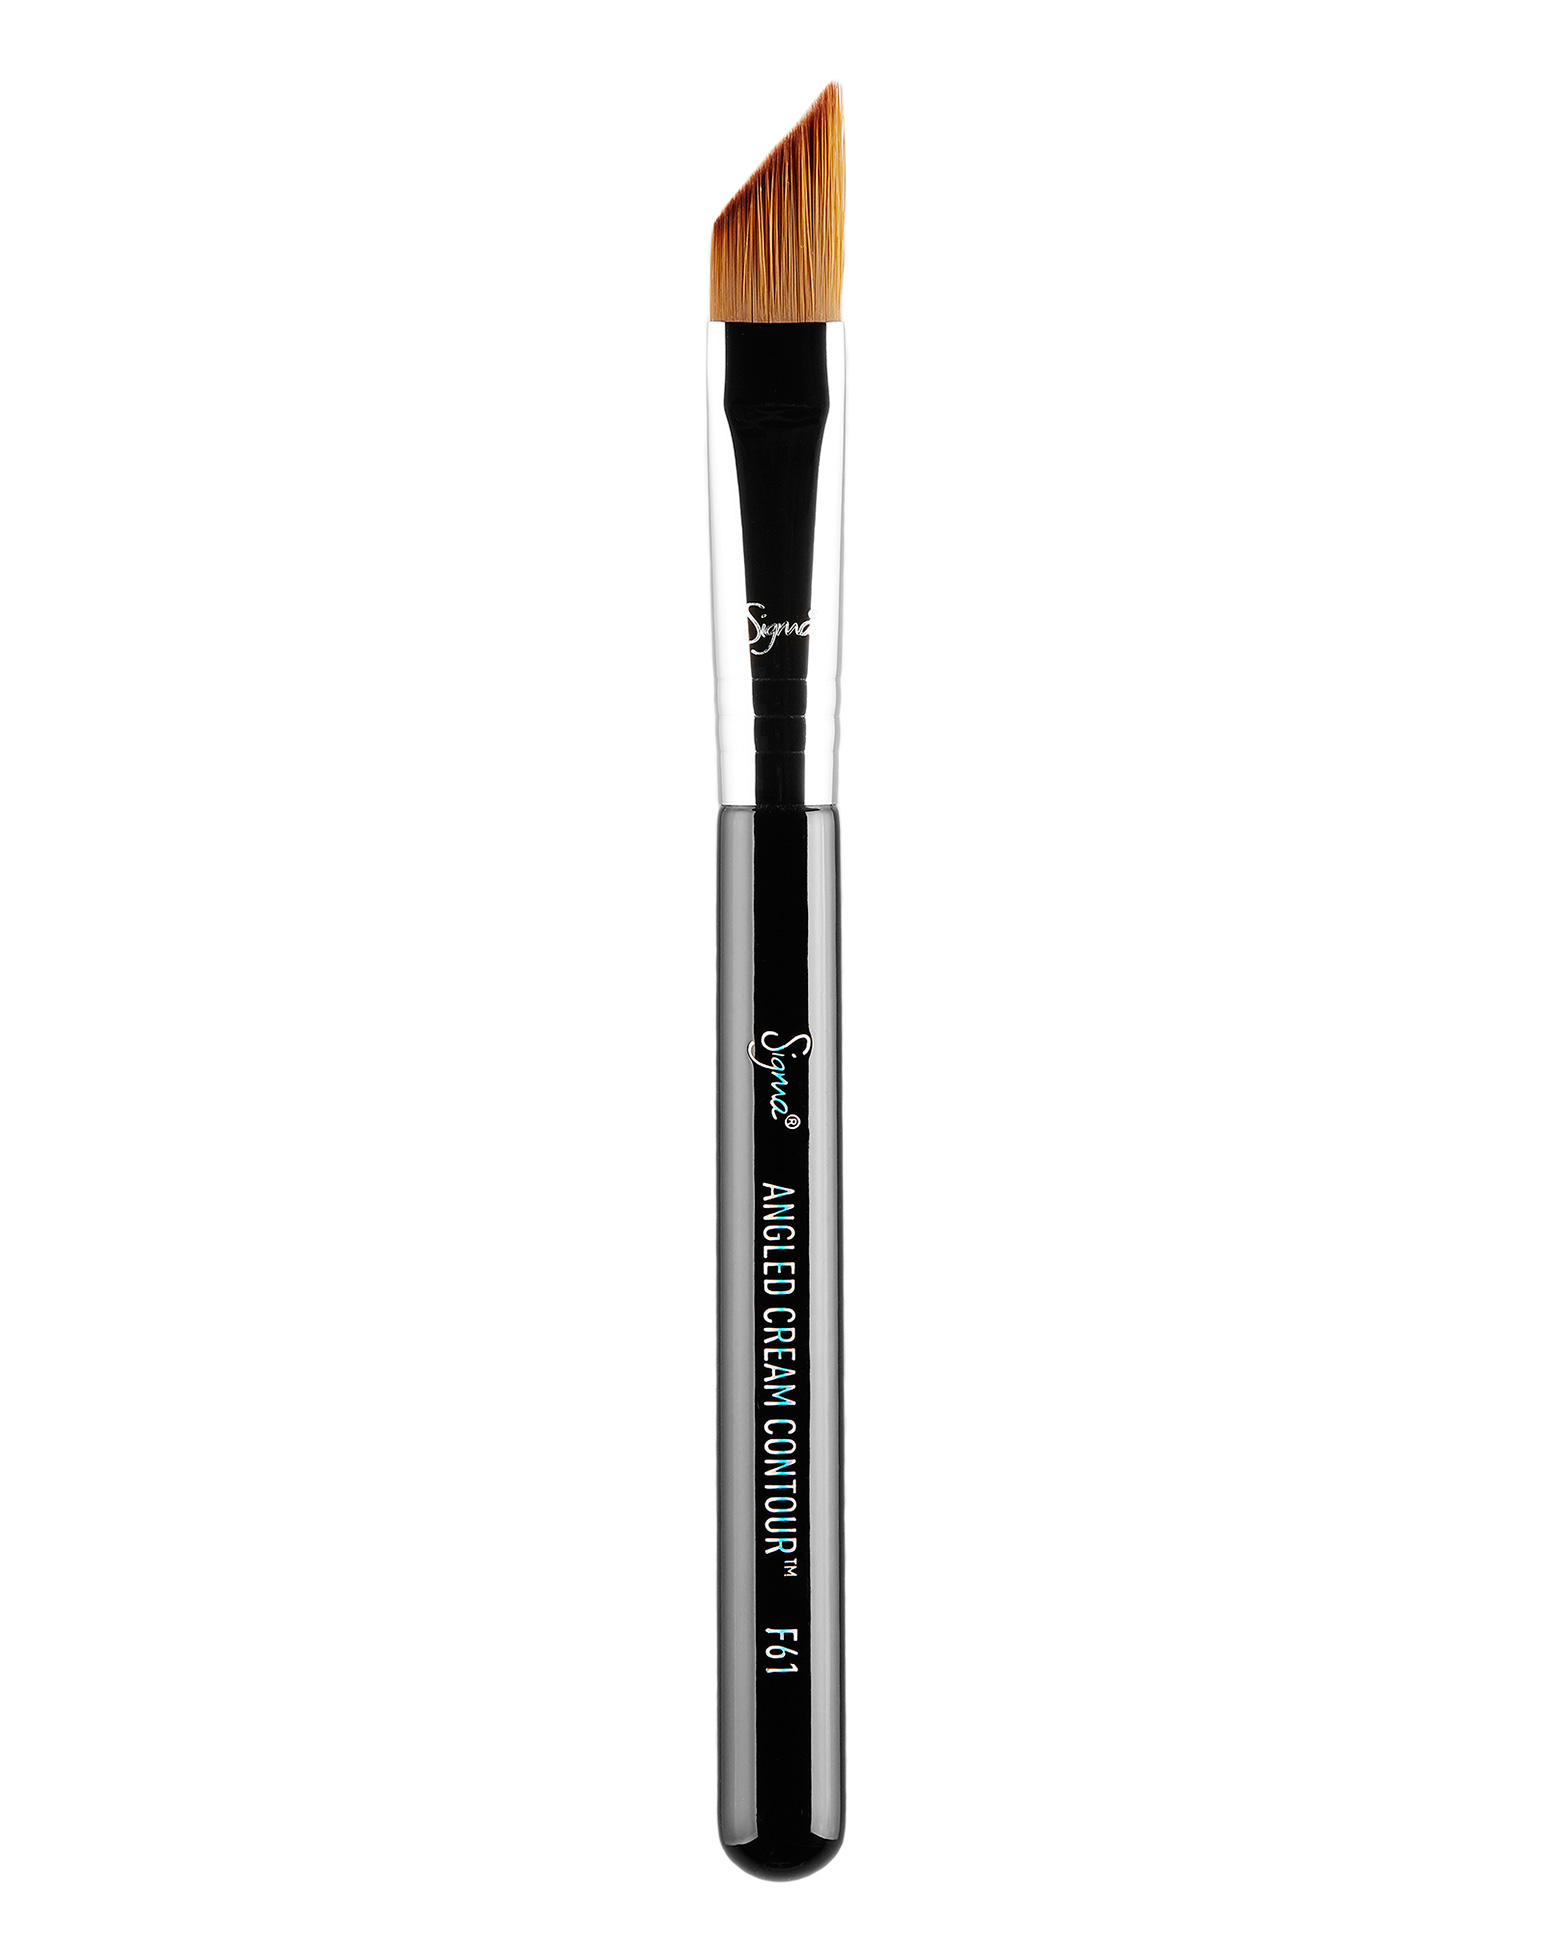 Sigma Beauty Best Of Sigma Beauty Brush Kit 122 Value: Angled Cream Contour Brush (F61)